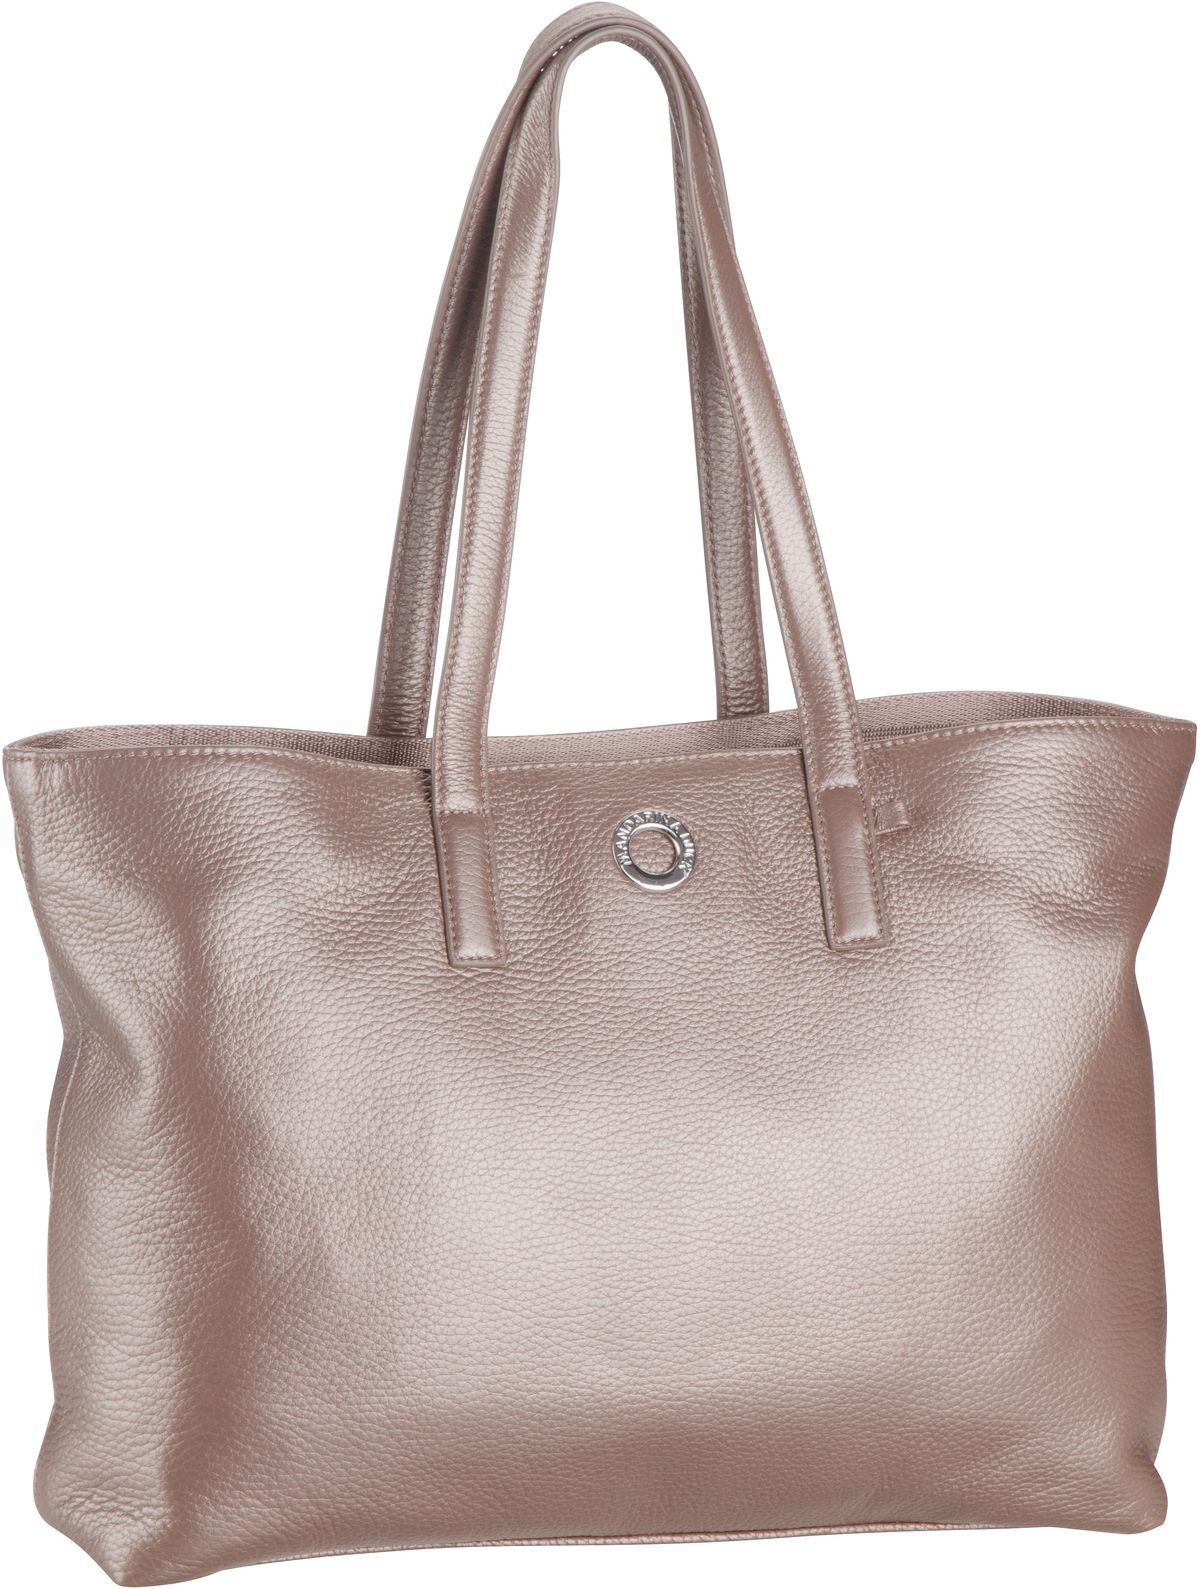 Shopper Mellow Leather Lux Tote Bag ZLT24 Smog